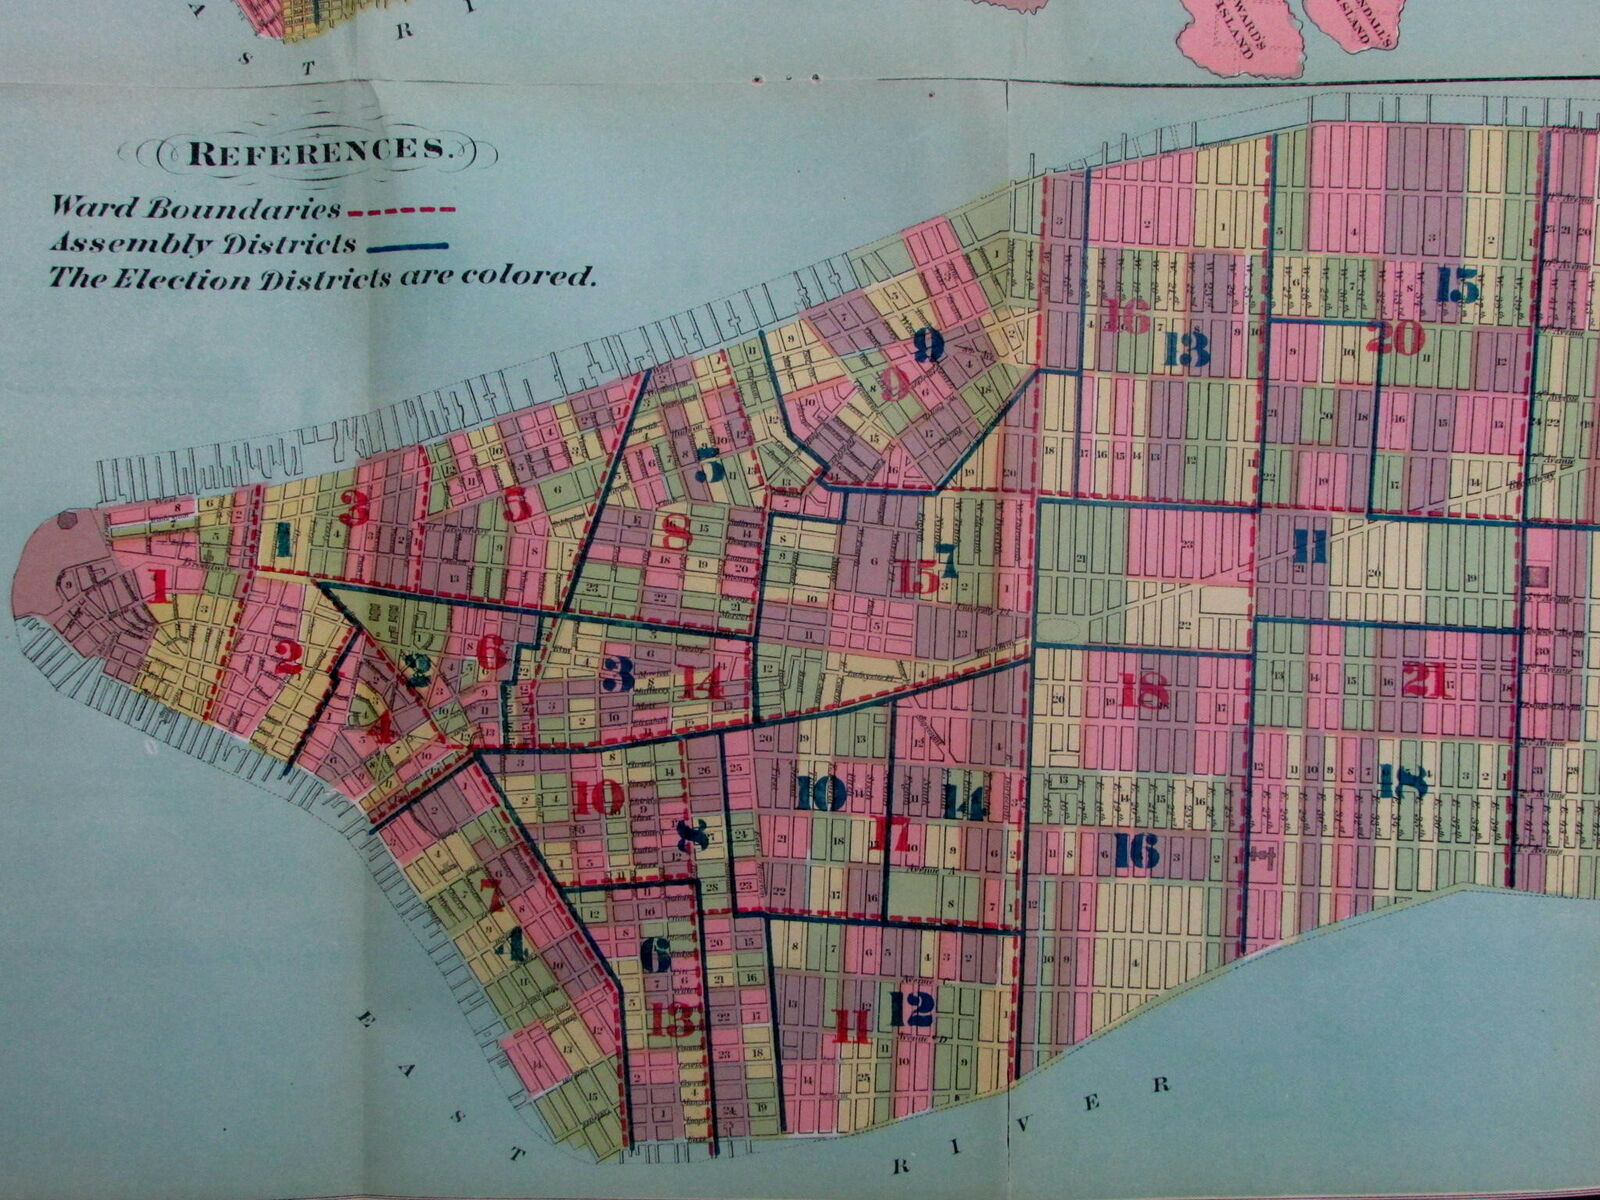 Map Of New York City Districts.New York City Plan 1870 Political Wards Senate Congress Old Map